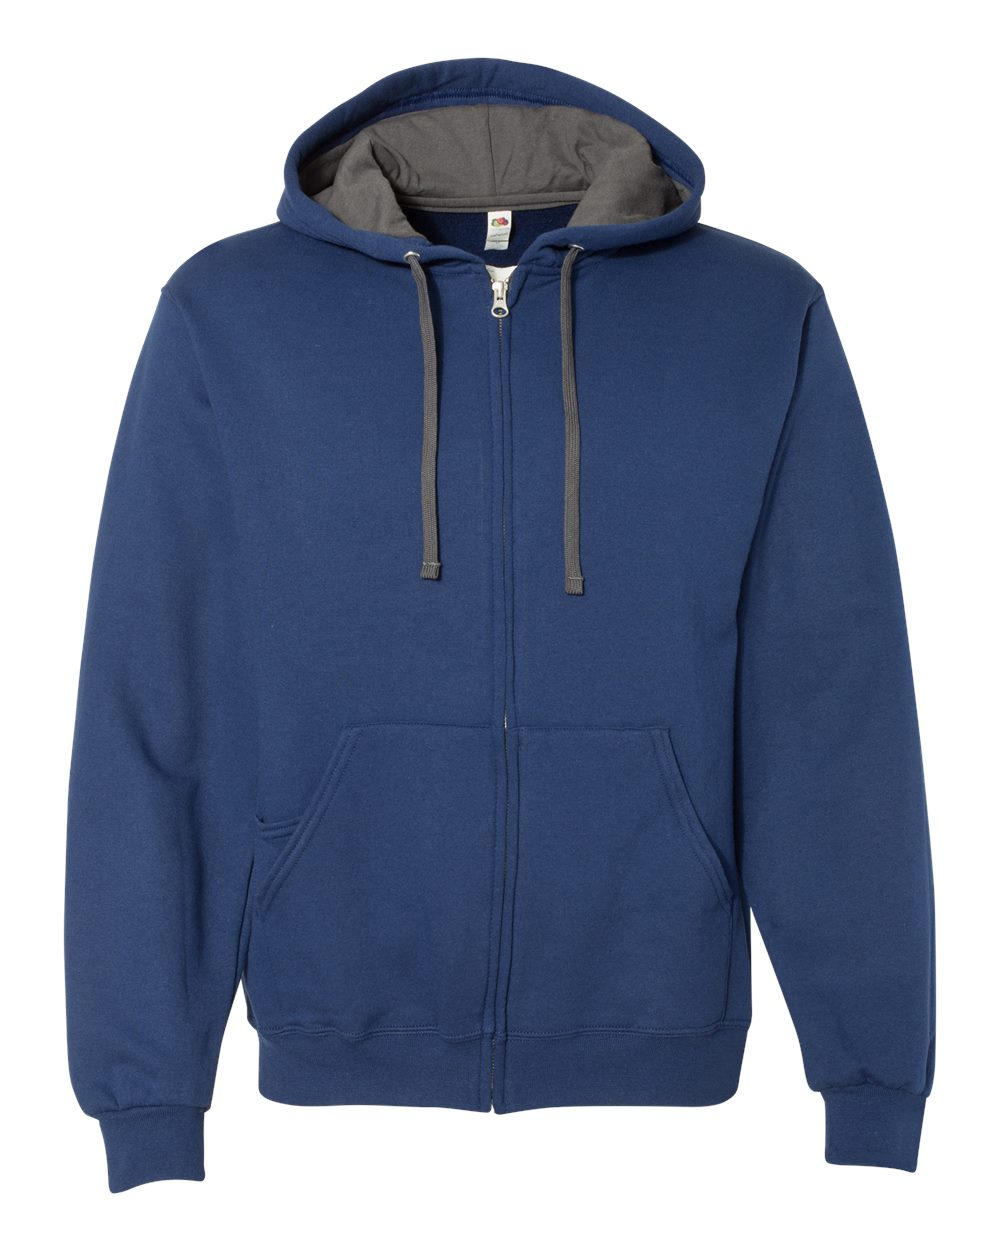 Fruit-of-the-Loom-Mens-Sofspun-Hooded-Full-Zip-Sweatshirt-Blank-SF73R-up-to-3XL thumbnail 6